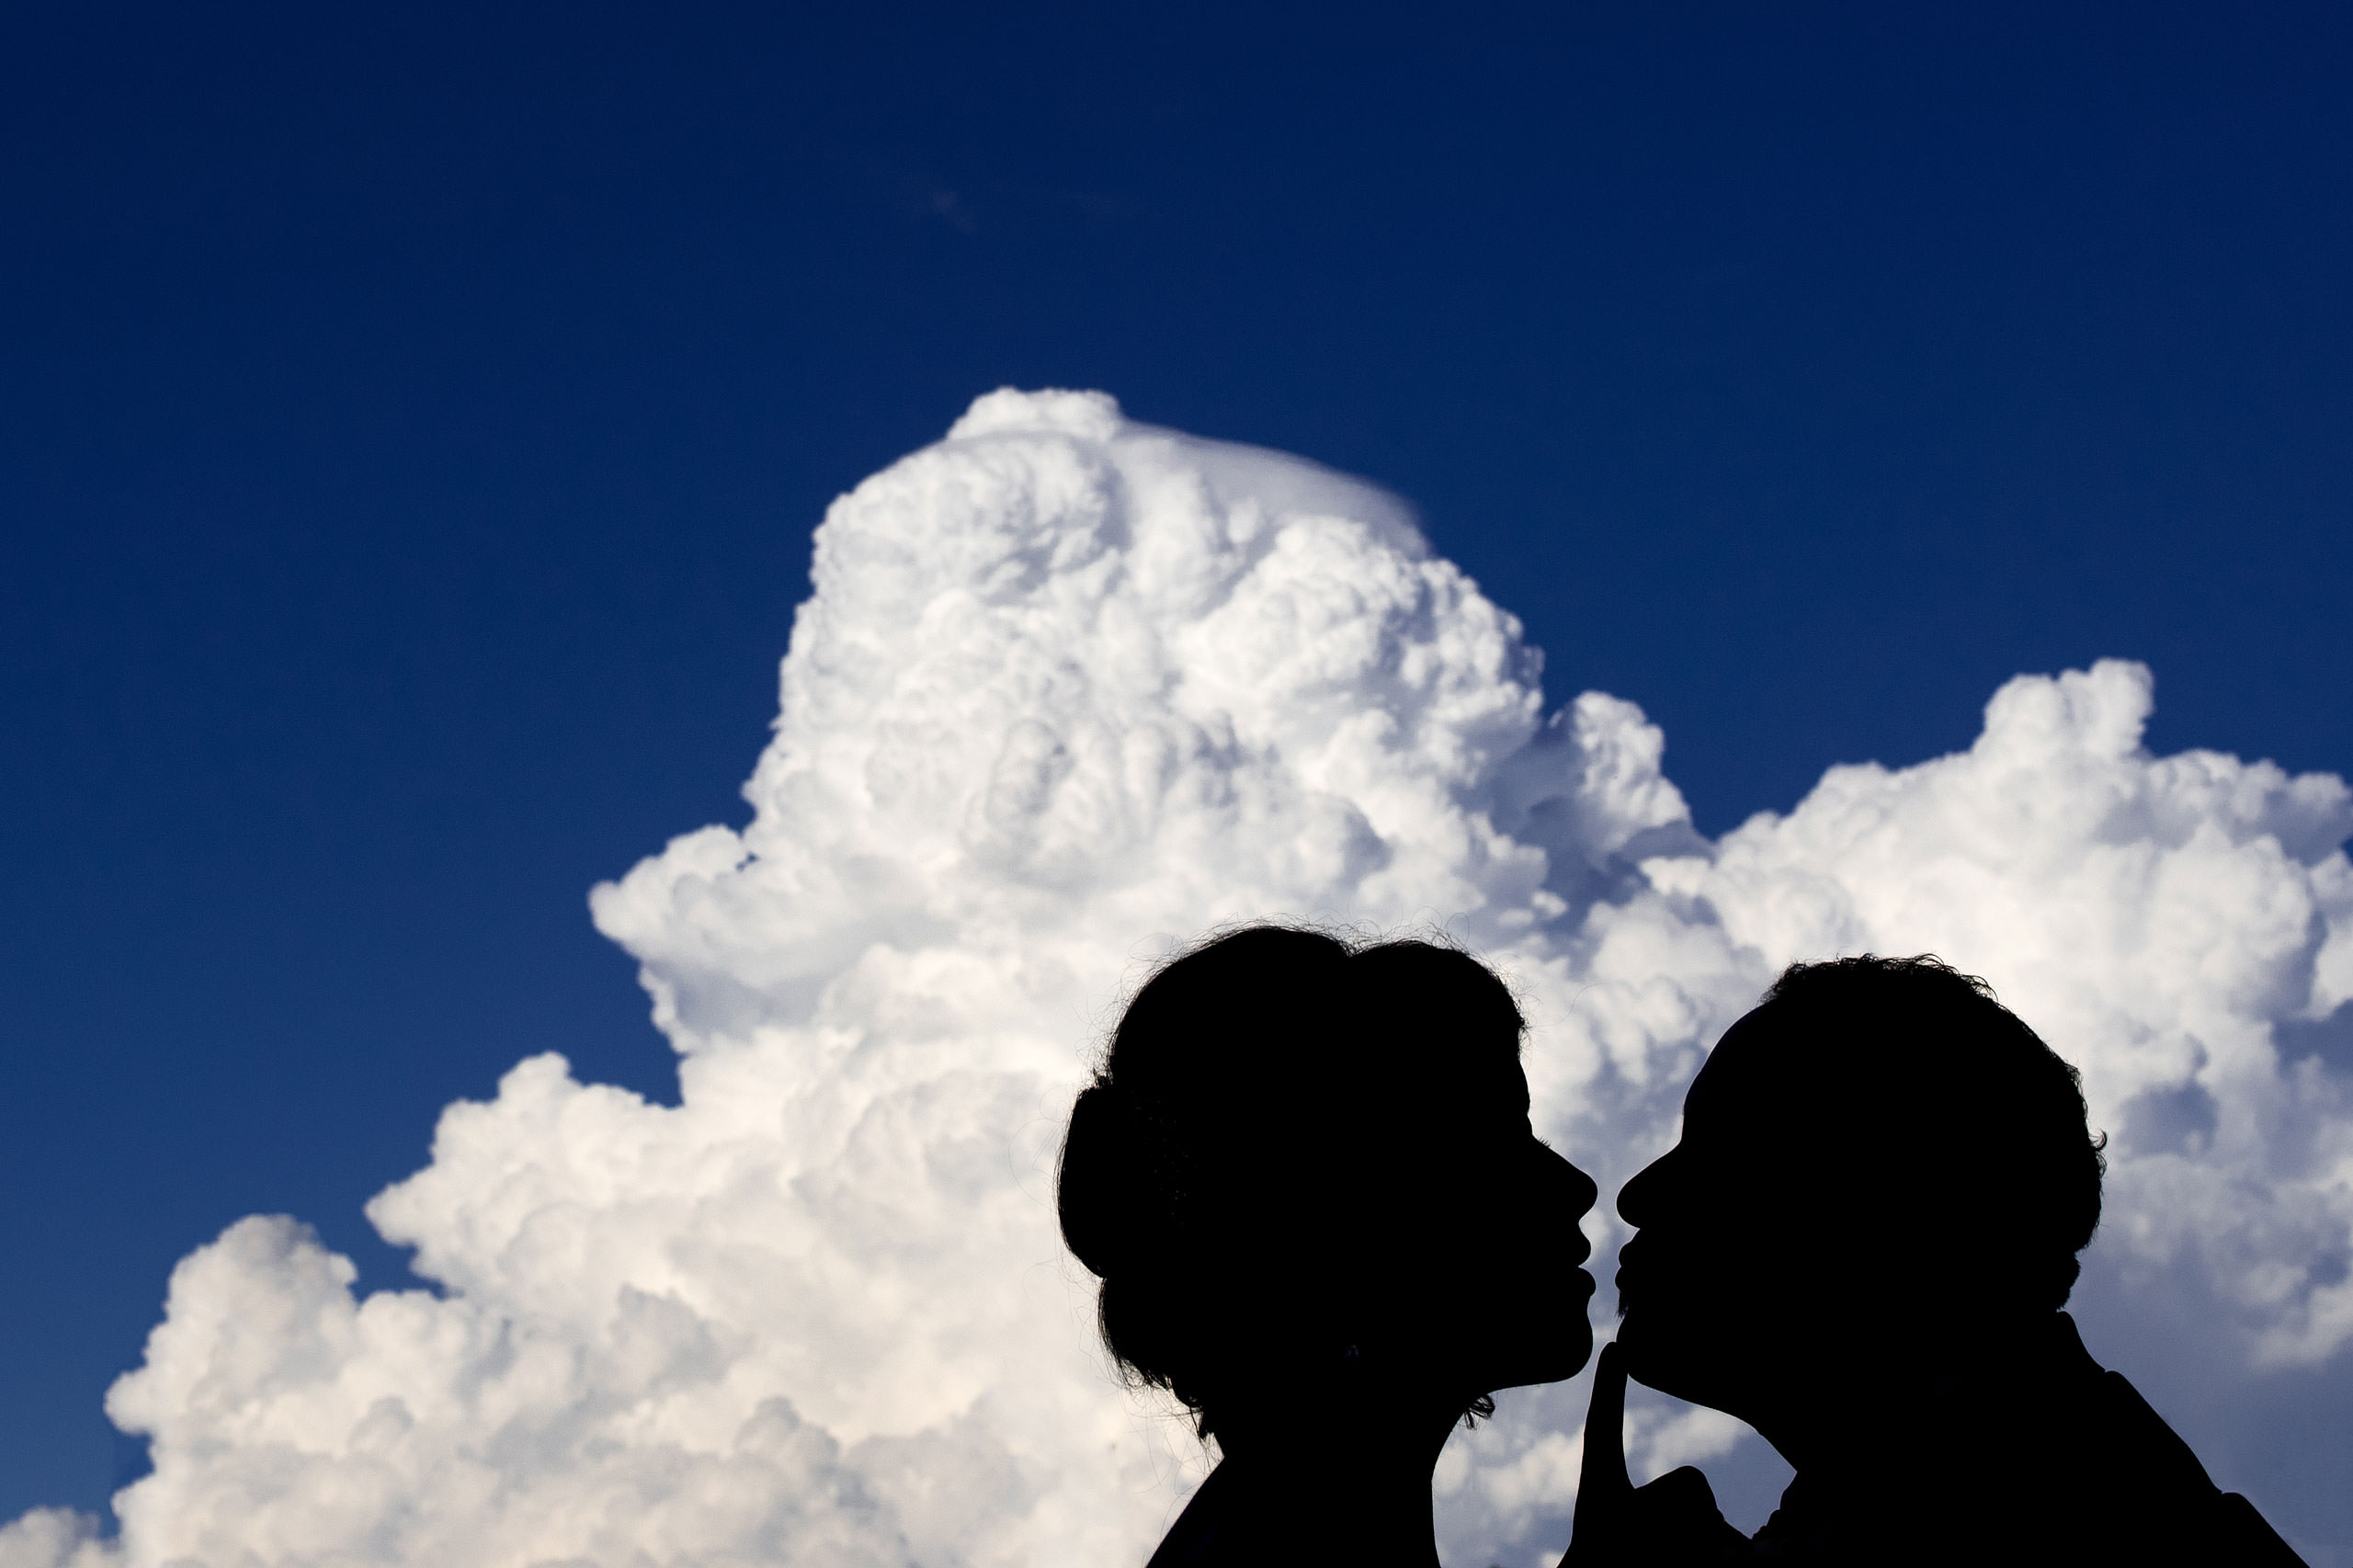 a silhouette of a bride and groom in front of a cloud by Edmonton wedding photographer sean leblanc